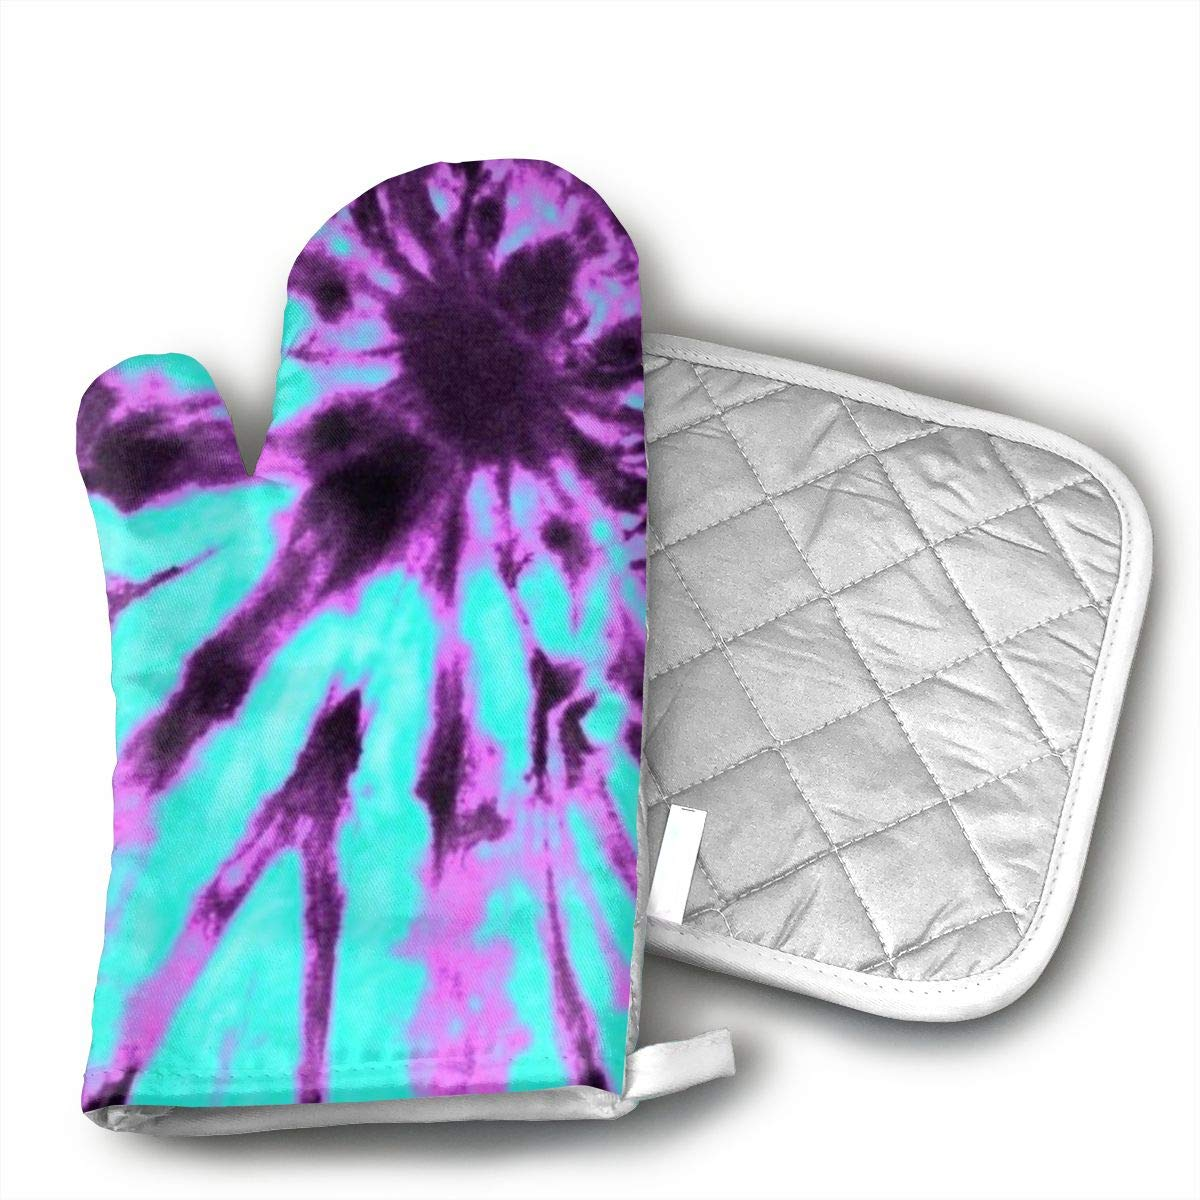 CHWEYAQ Purple and Blue Tie Dye Oven Mitts Heat Resistant Cooking Gloves Non-Slip Waterproof Potholders